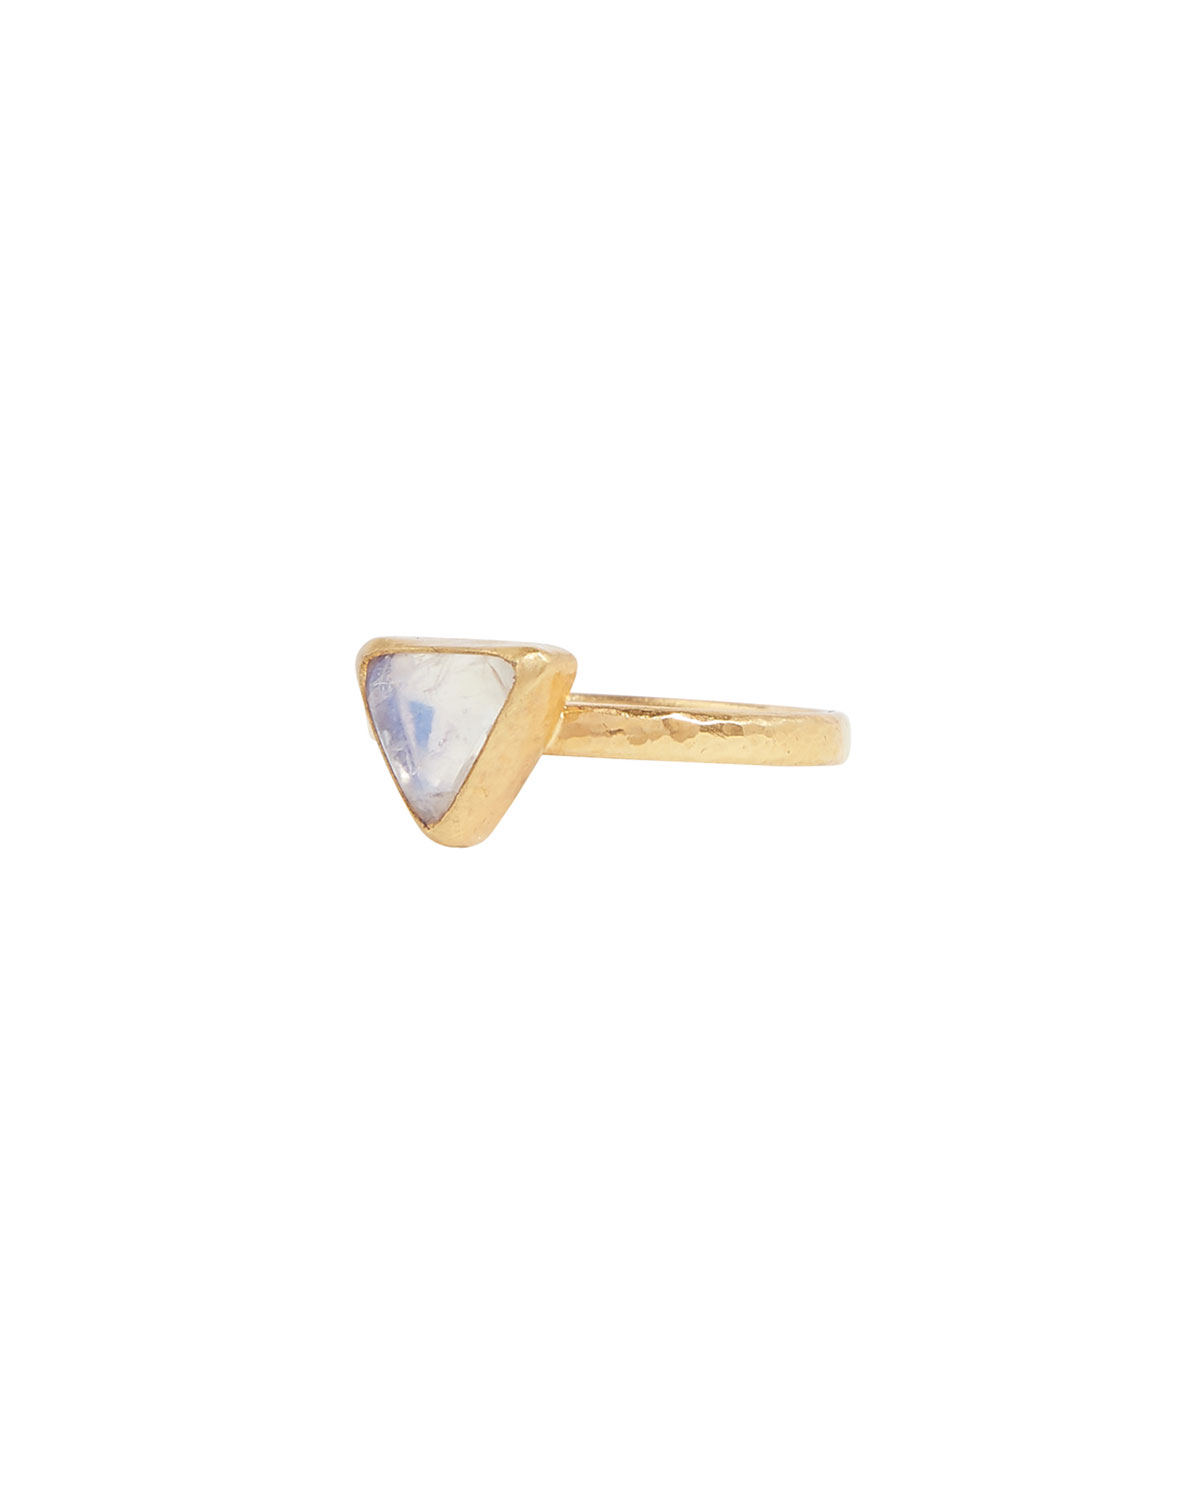 One-of-a-Kind 24k Moonstone Skittle Ring